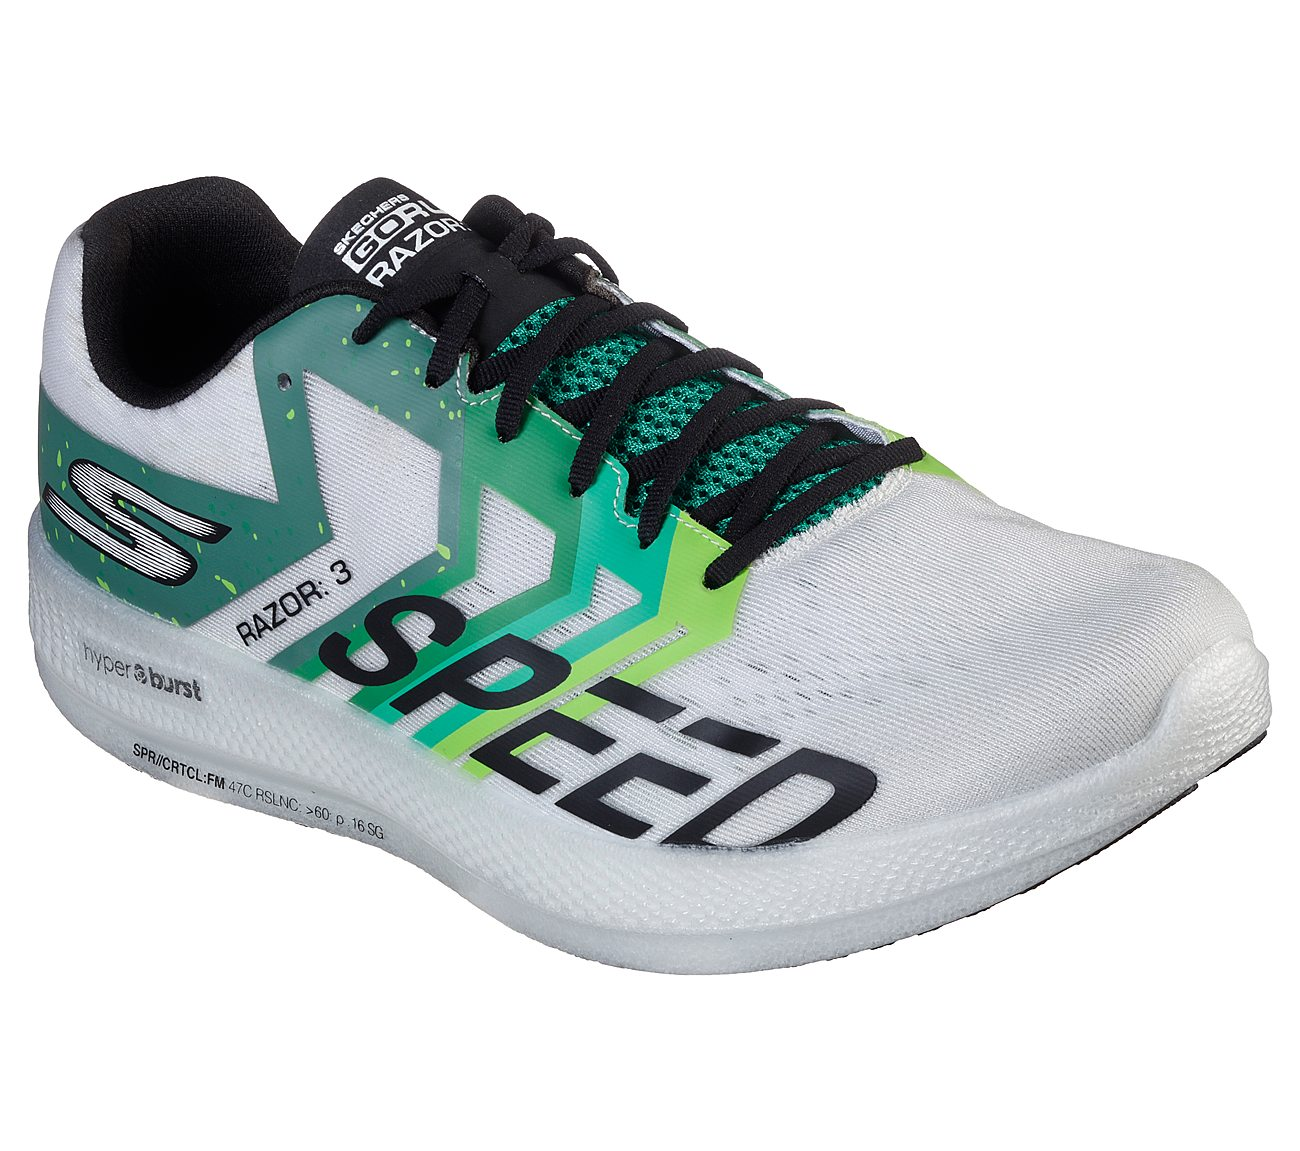 9bbf6531 Buy SKECHERS Skechers GOrun Razor 3 Hyper Skechers Performance Shoes ...